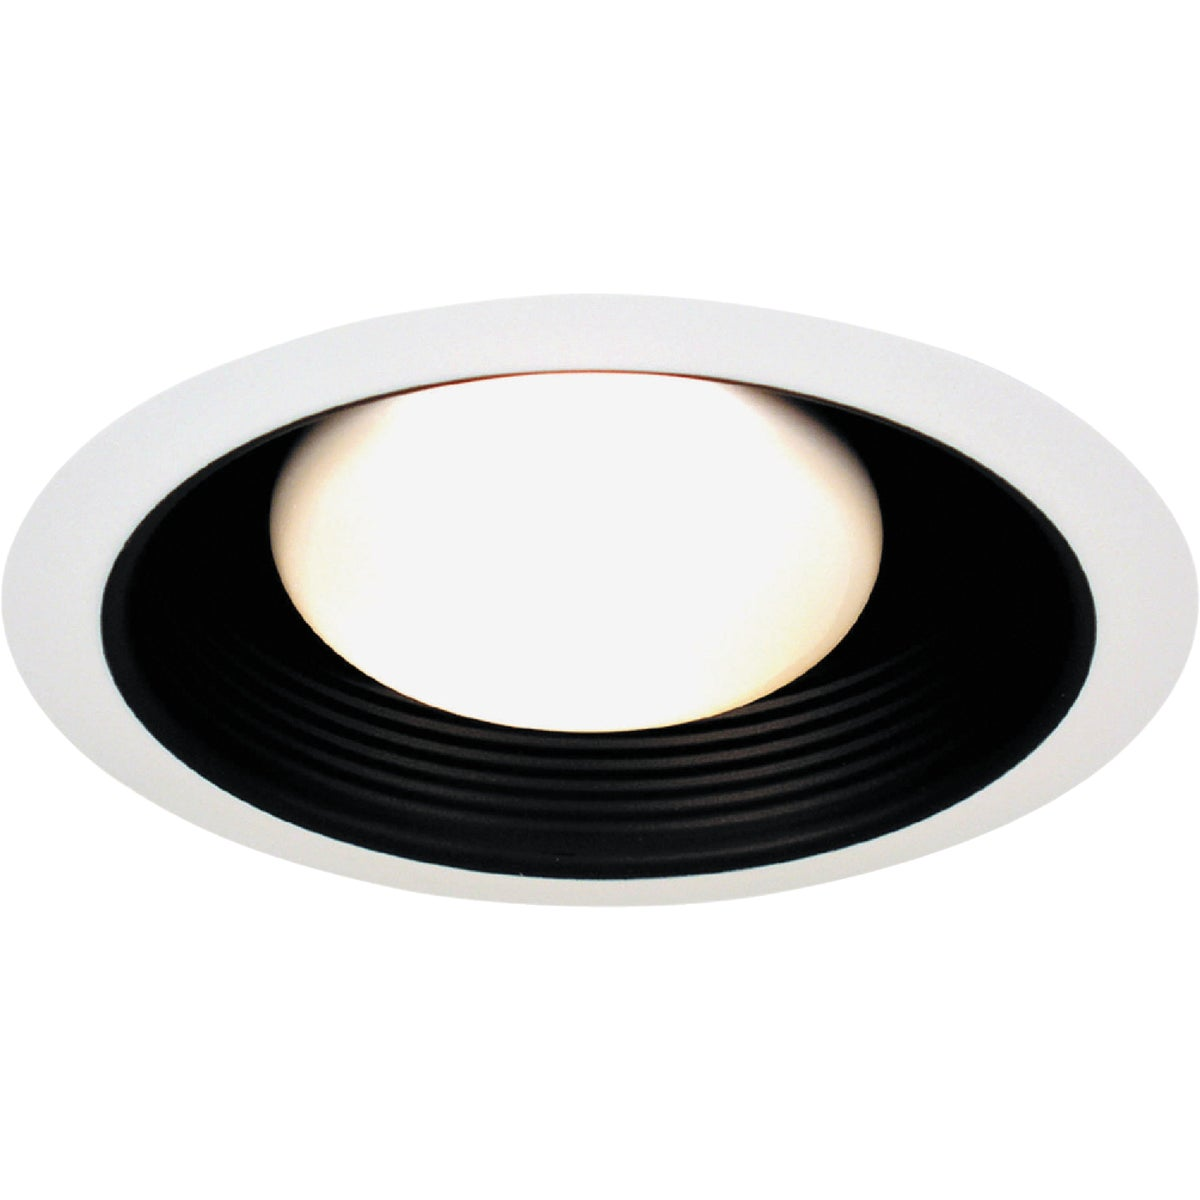 BLK RECESS FIXTURE TRIM - TRB30 by Philips Consumer Lum